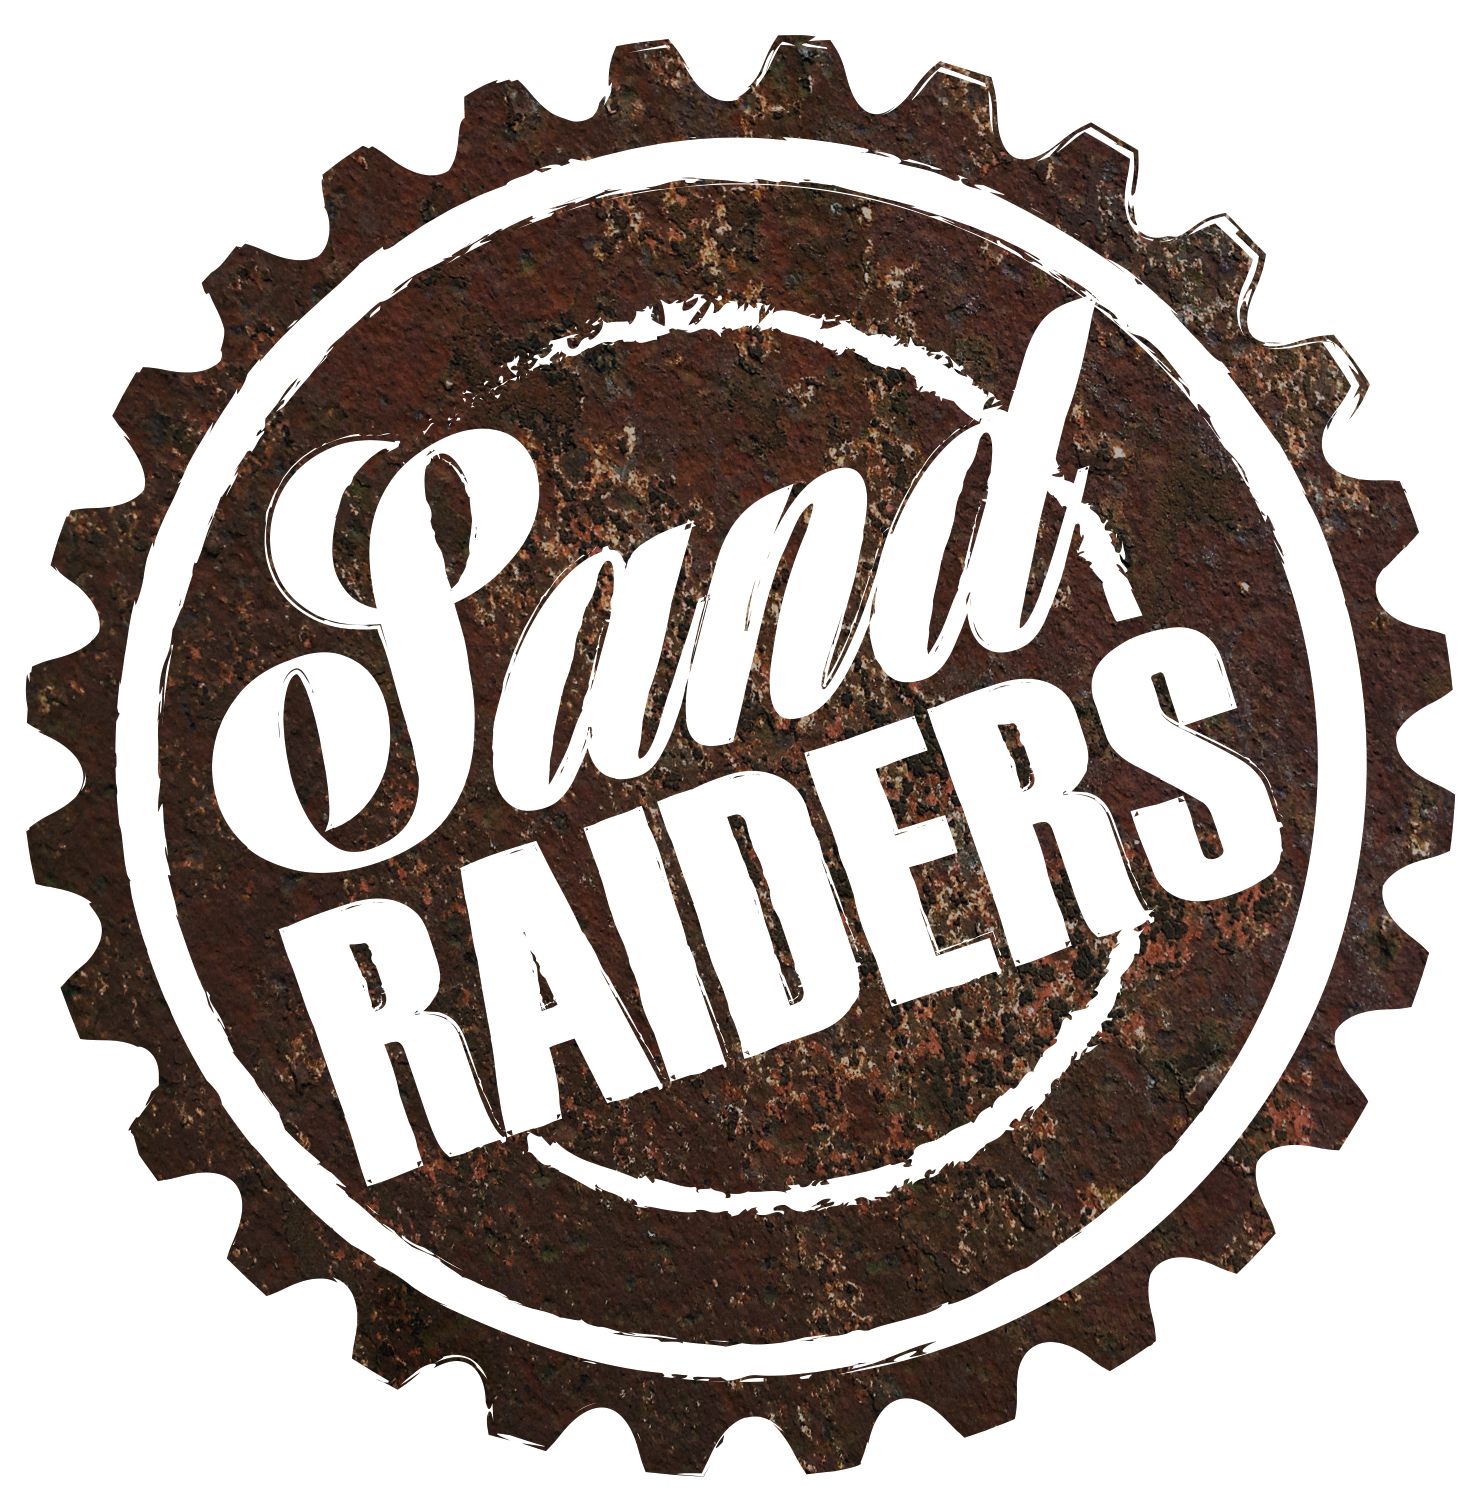 Sandraiders Shop